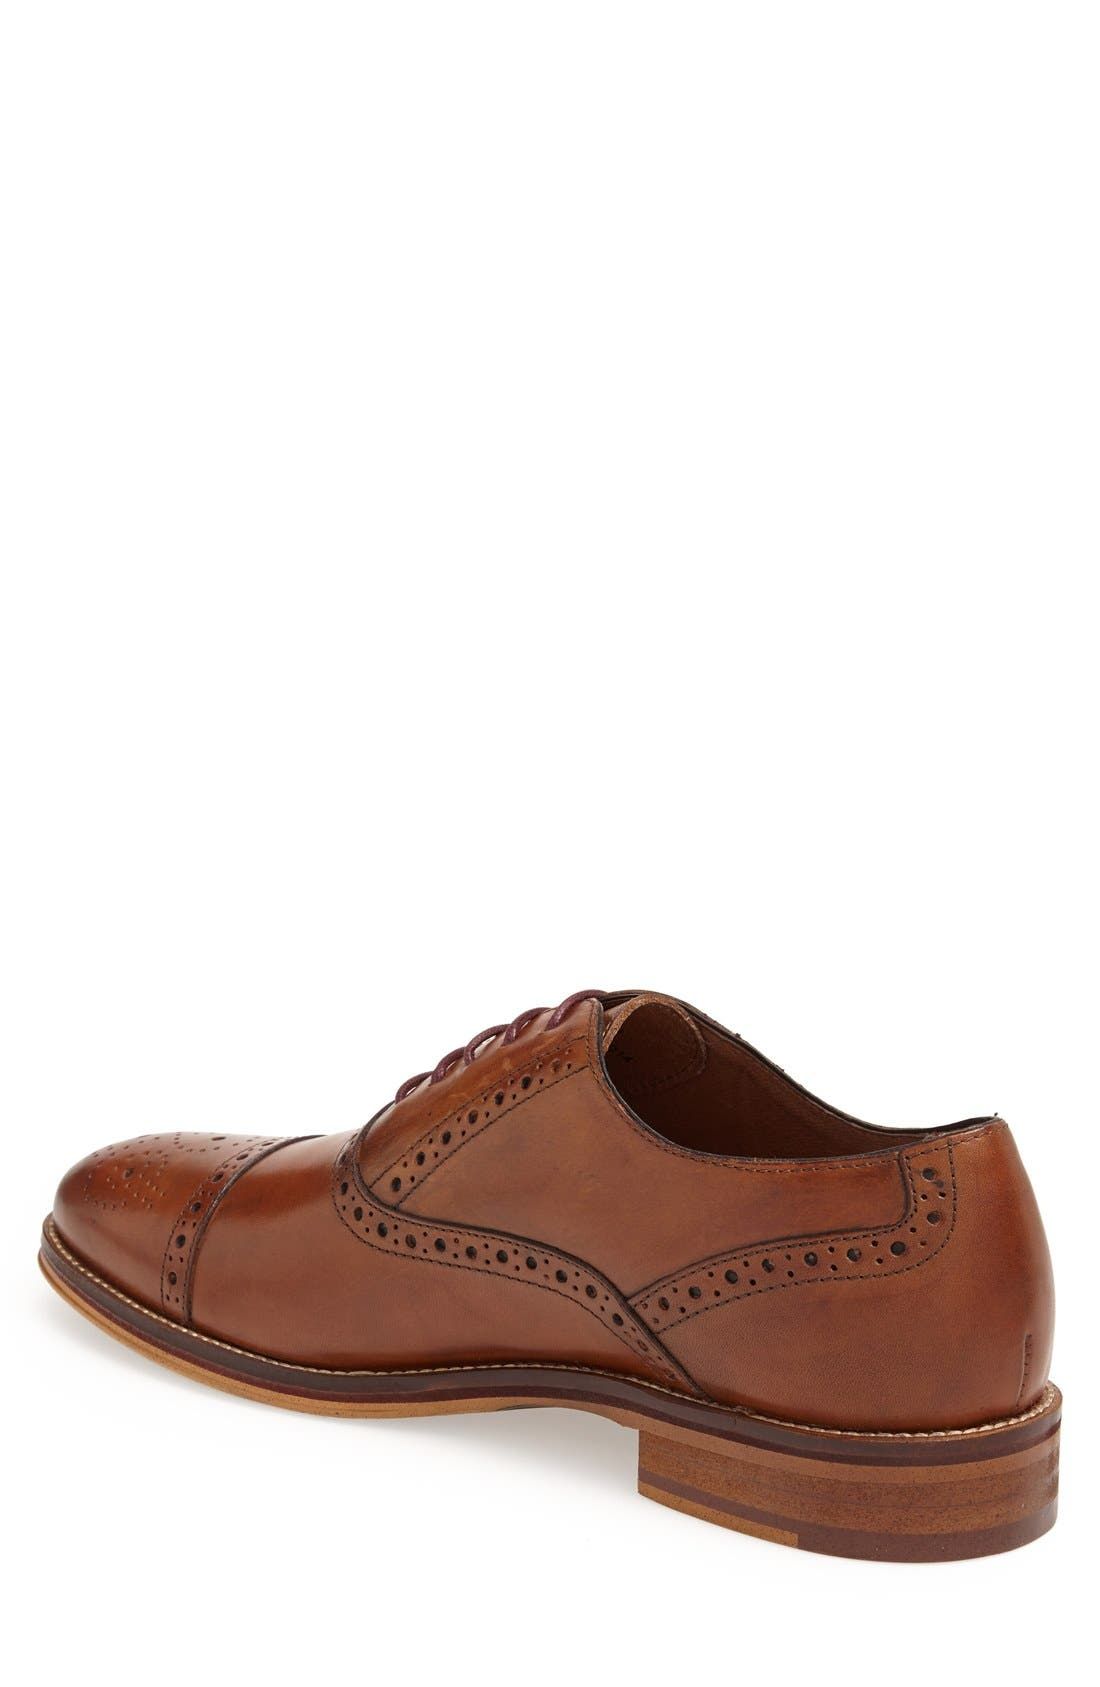 Alternate Image 2  - Johnston & Murphy Conard Cap Toe Oxford (Men)